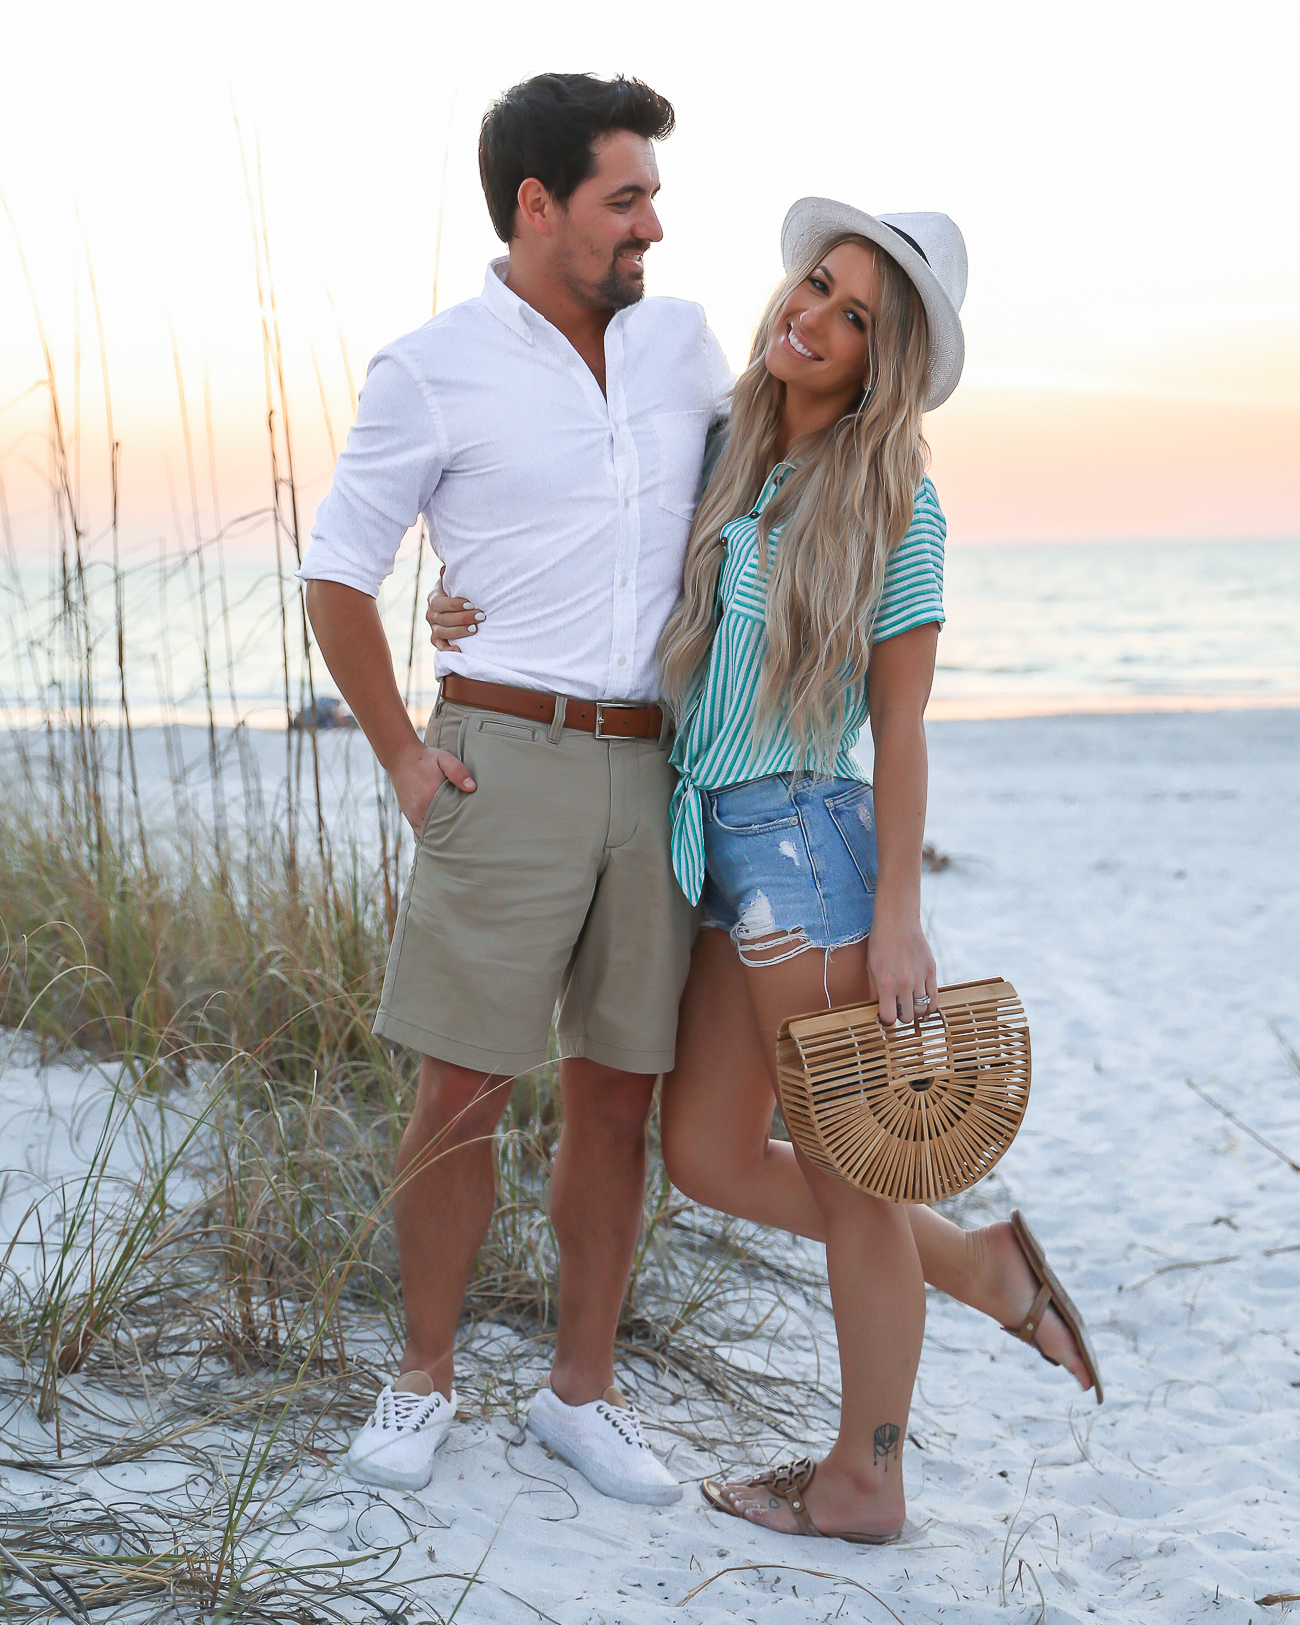 Beach Vacation outfit idea mens beach outfit his & hers couples vacation style Laura Beverlin -2